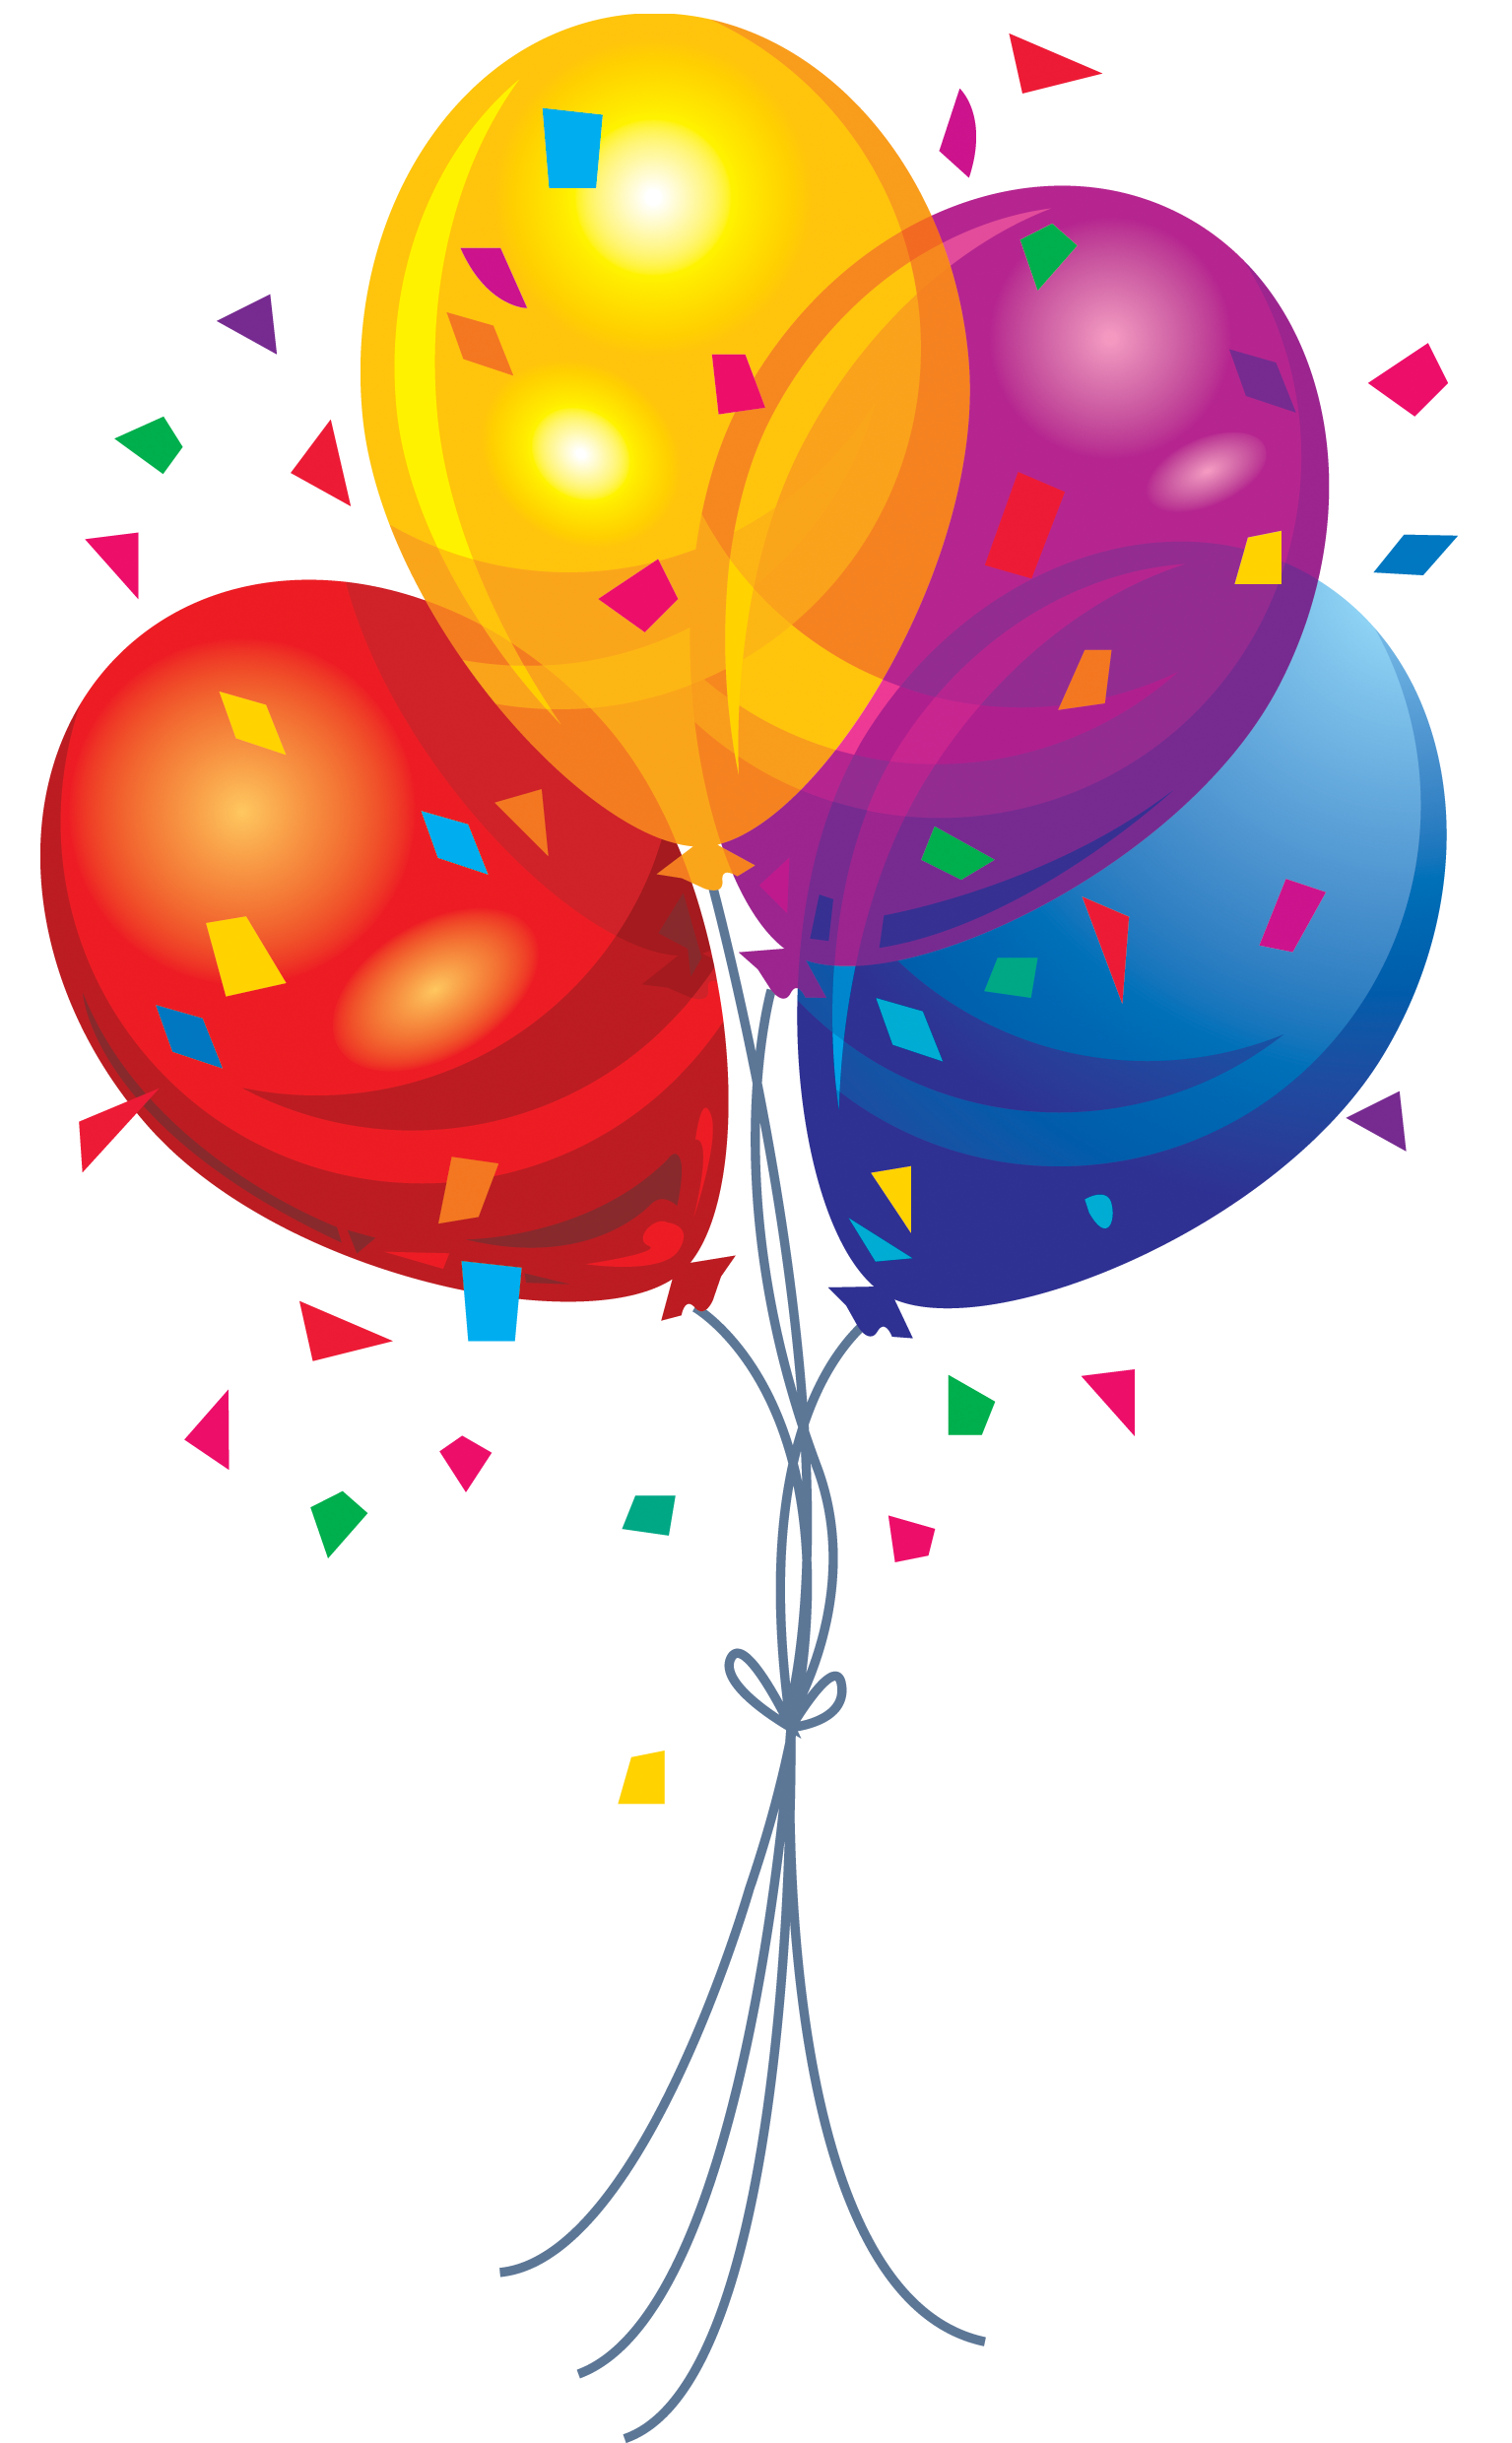 Png greetings pinterest happy. Balloon clipart design